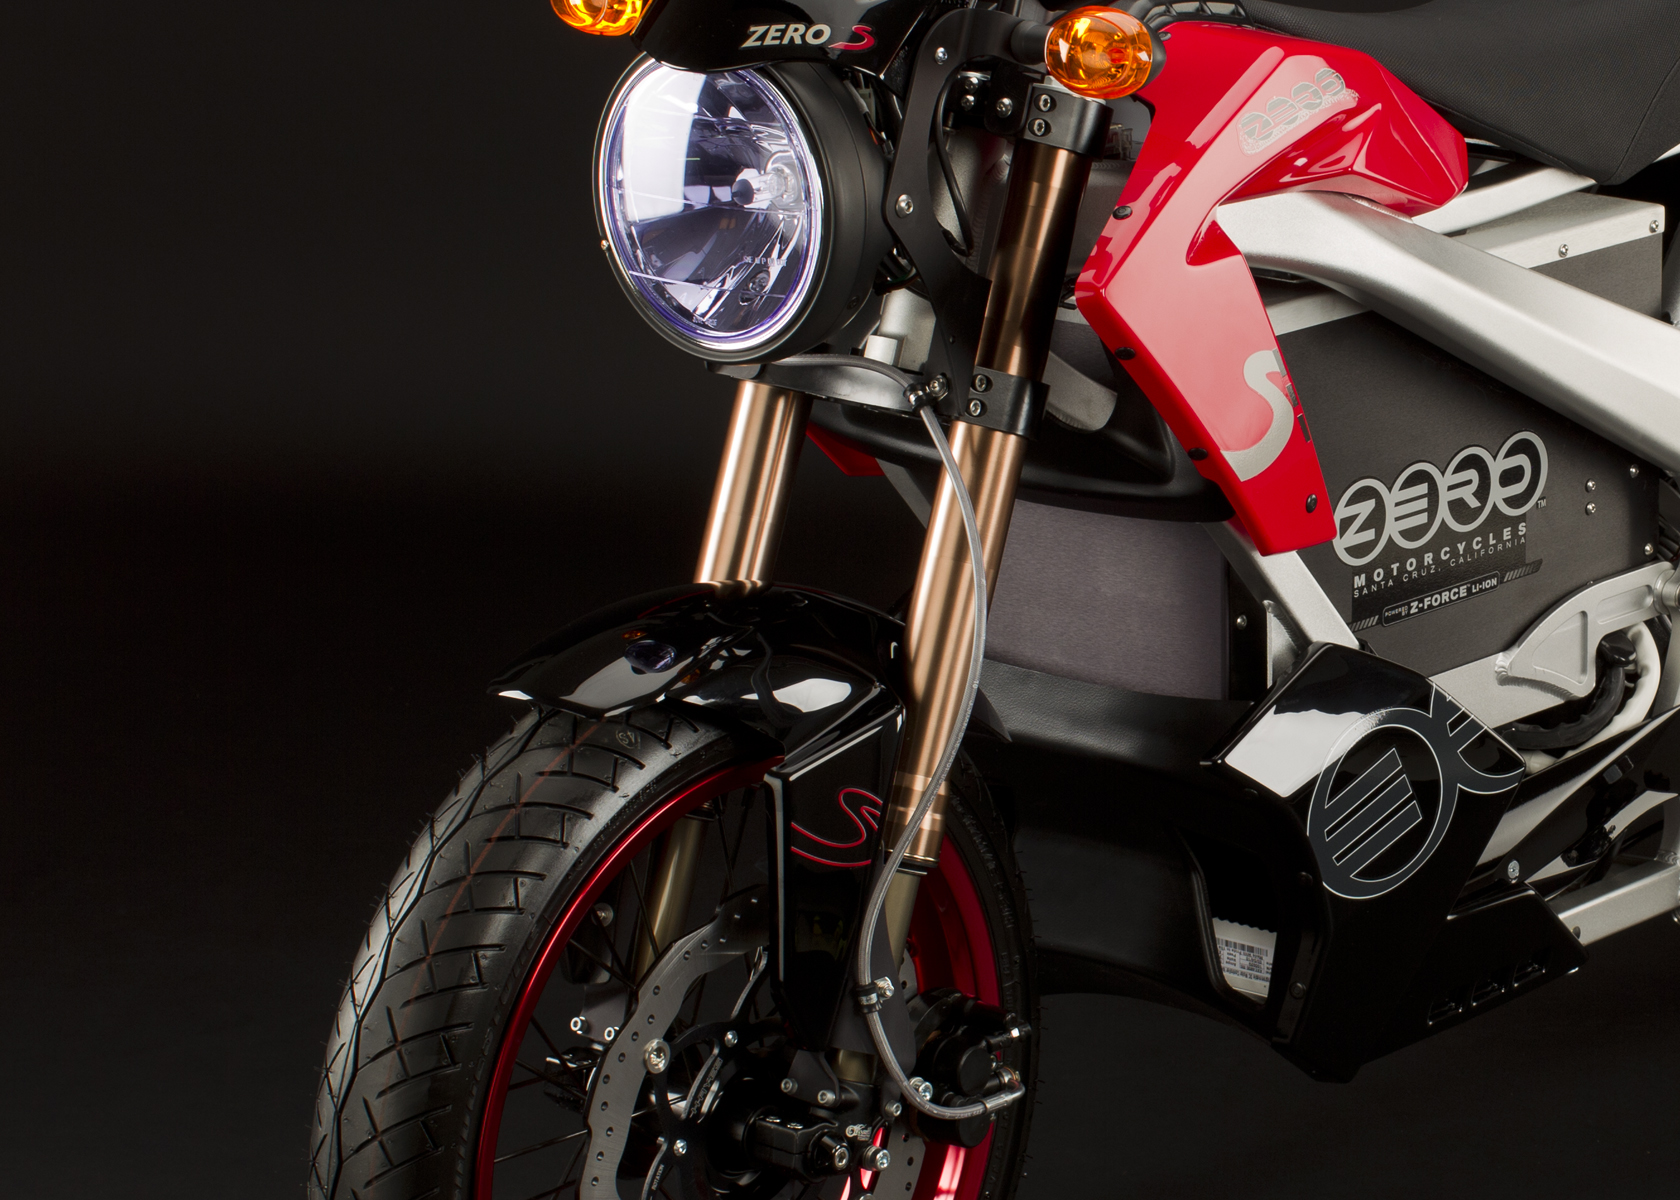 2011 Zero S Electric Motorcycle: Front Fork